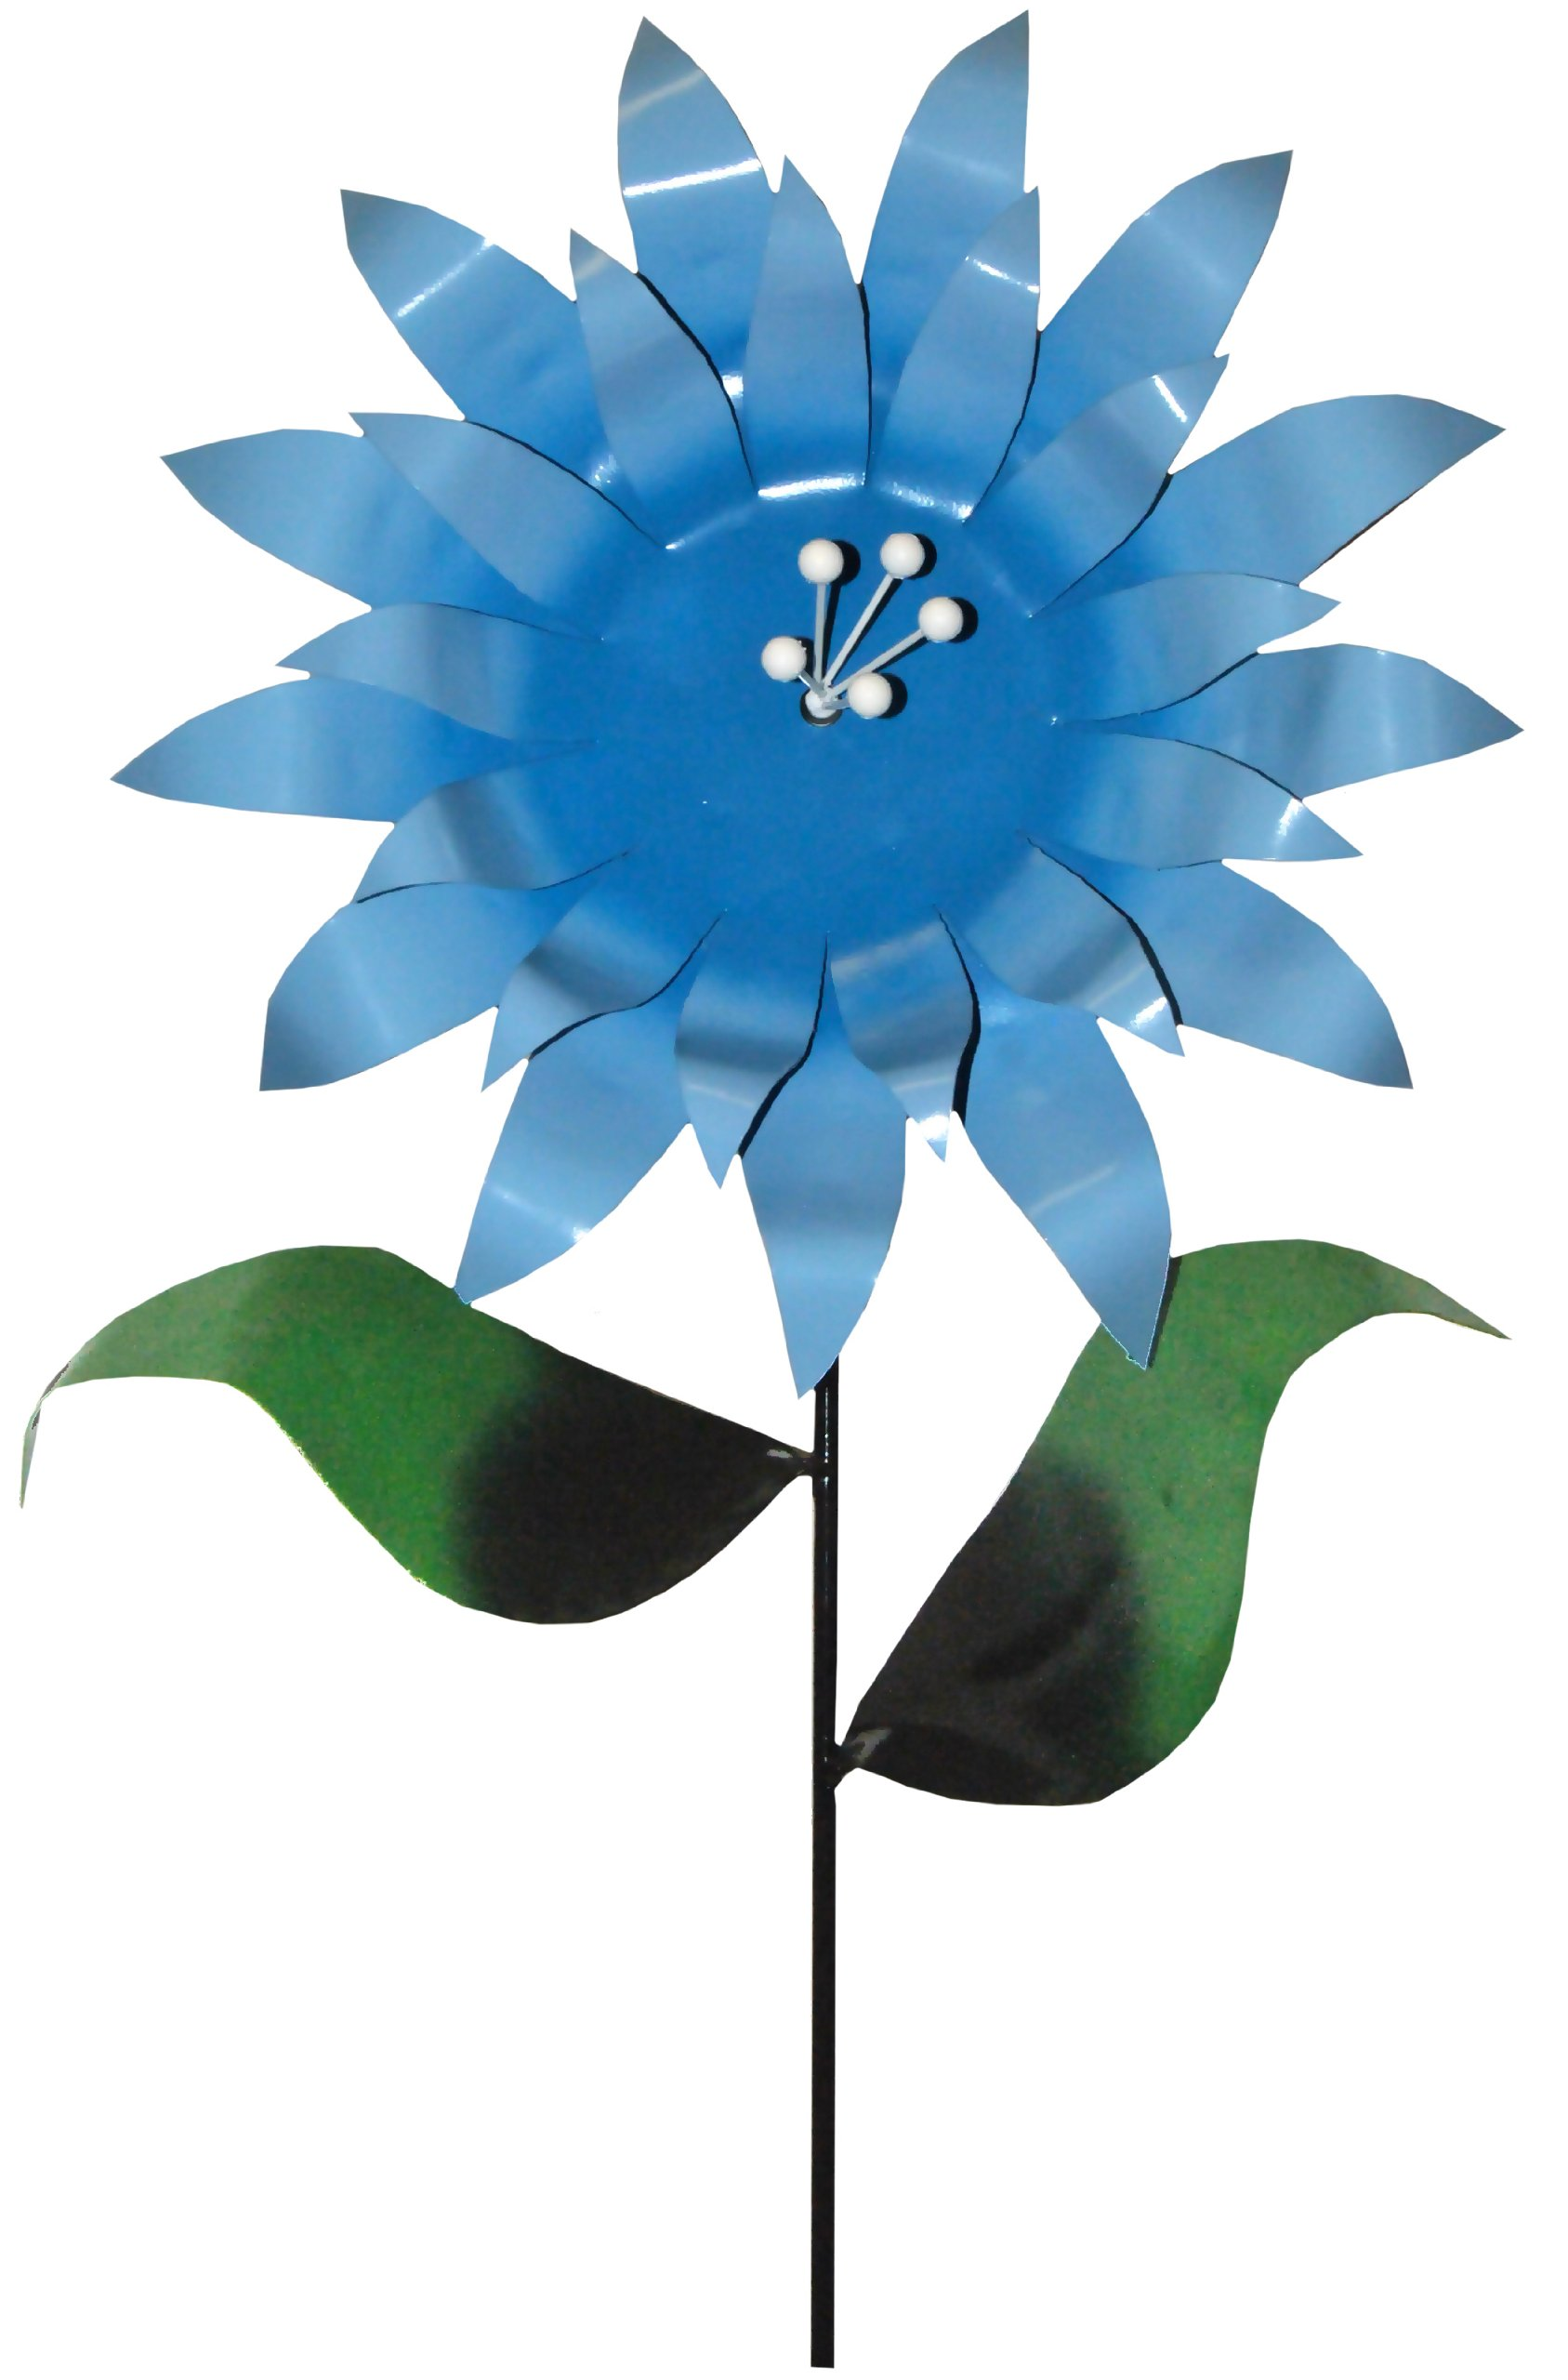 Steven Cooper Metalsmith AFLWR-04-XL Artificial Garden Flower on Footed Stake, 6-Feet, Light Blue by Steven Cooper Metalsmith